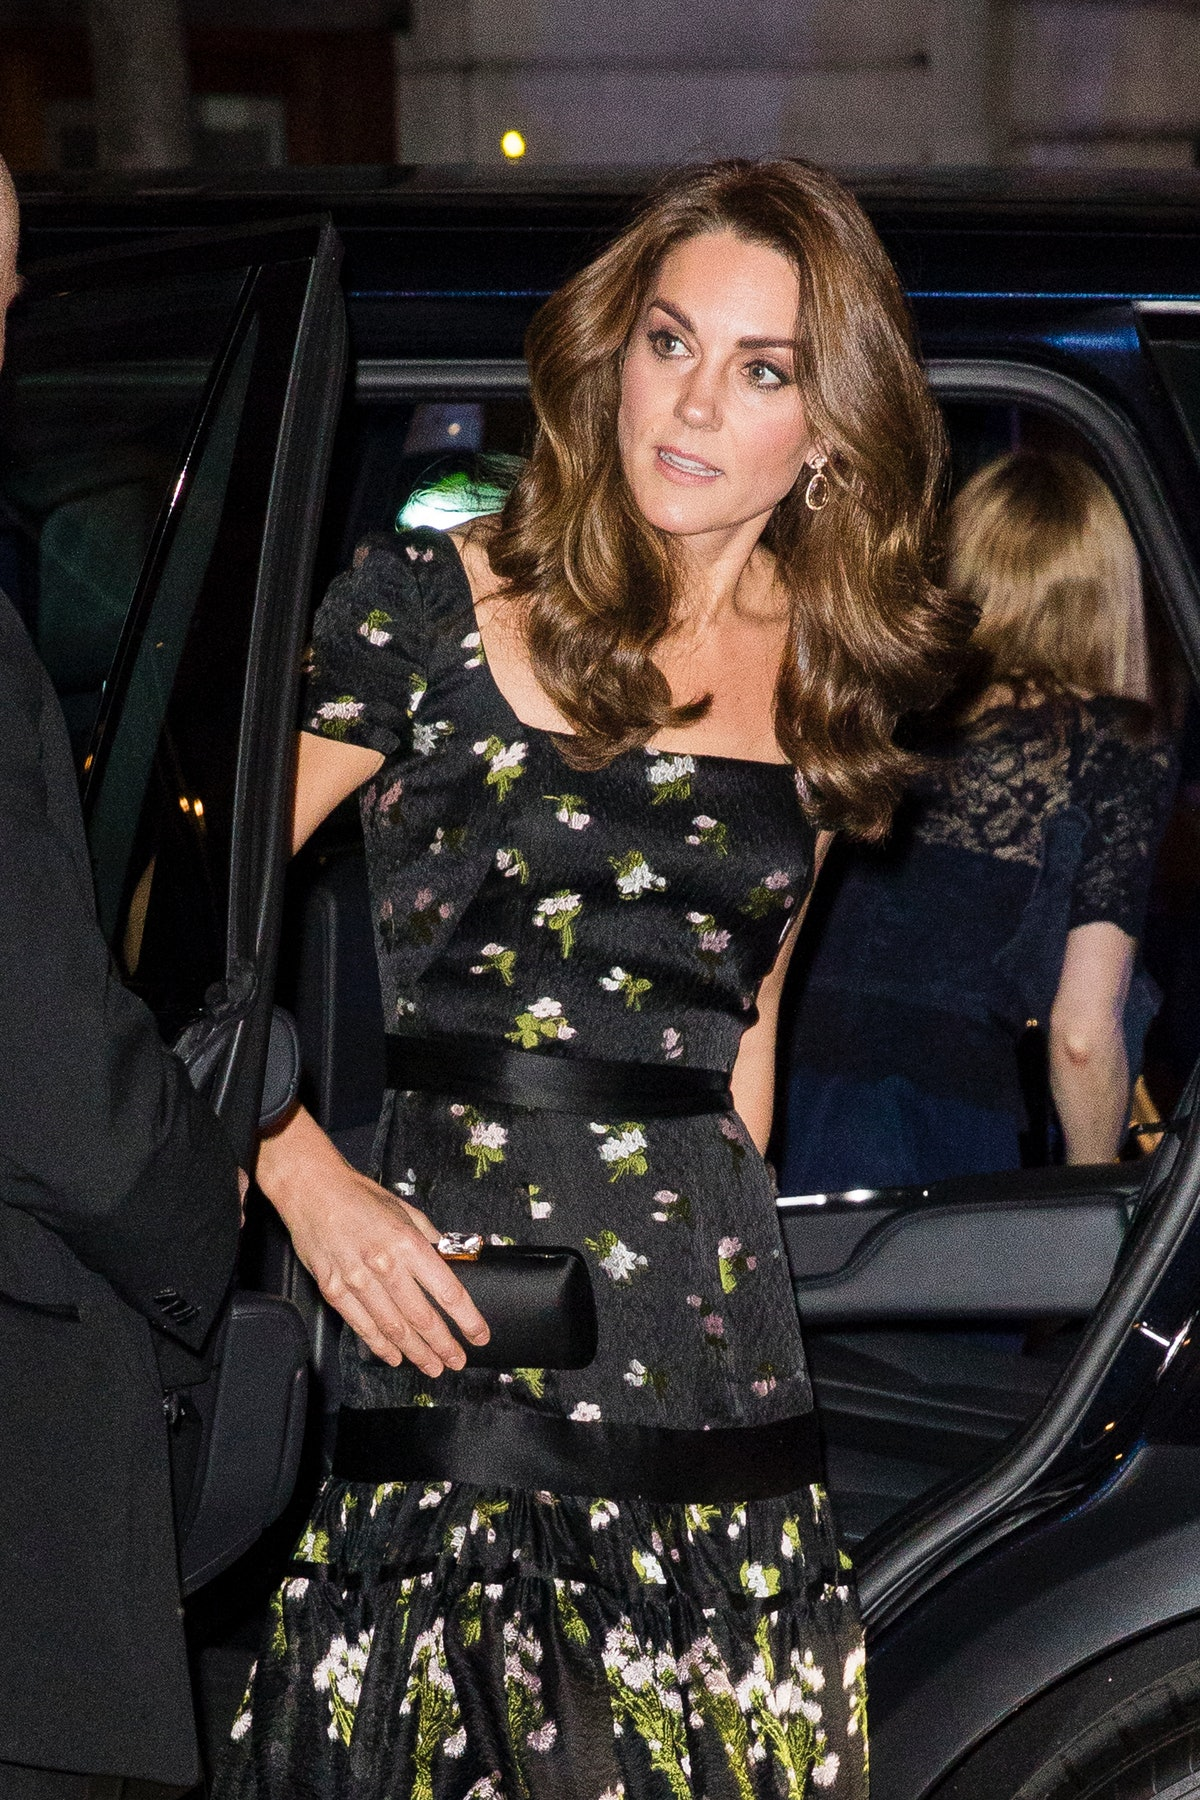 Kate Middleton Rewore Her Black Floral Alexander McQueen Dress But Made It TOTALLY New